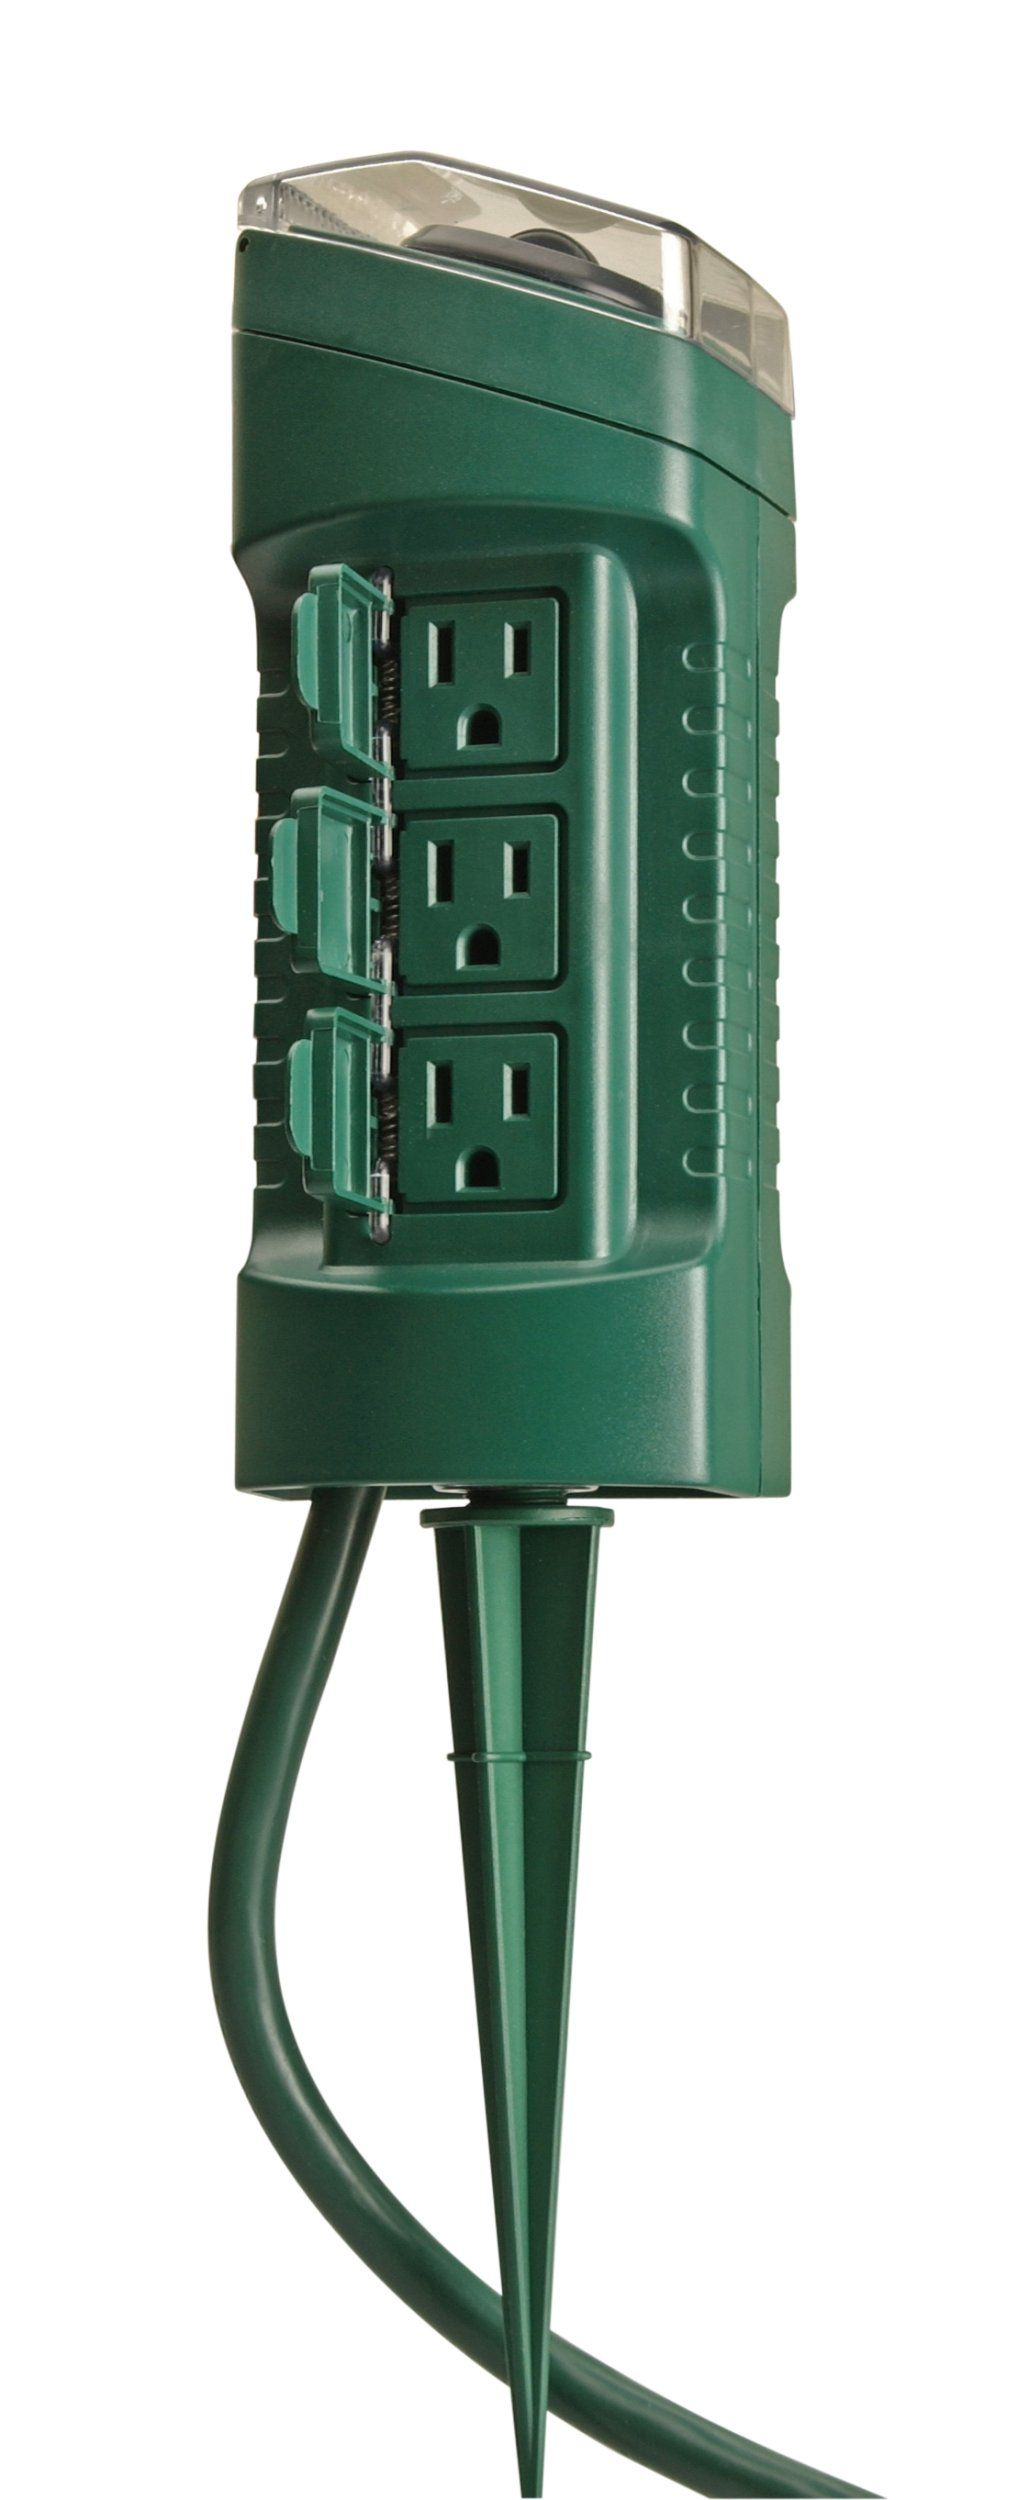 Yard Master 13547 6 Outlet Stake With Light Sensor And Foot Cord Outdoor Timer 25